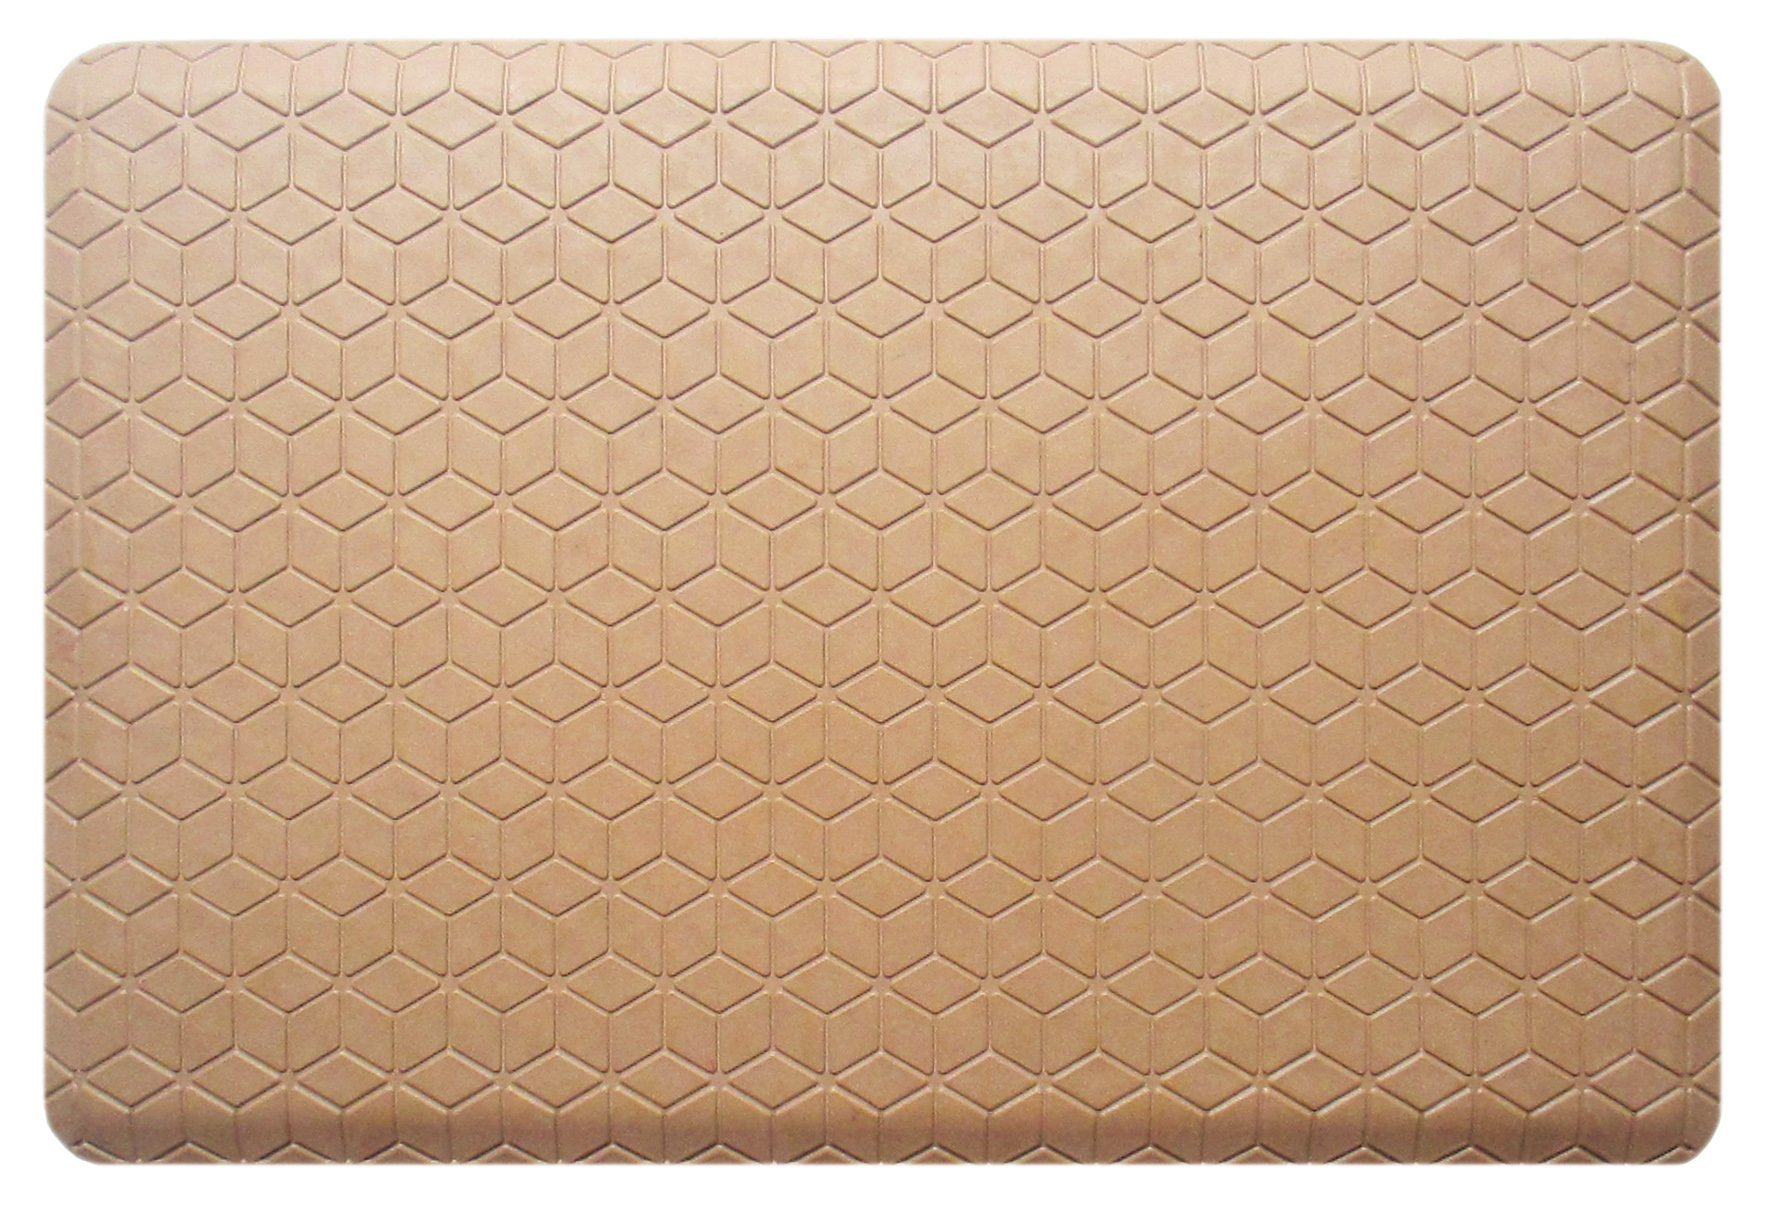 A1 Home Collections A1HCKM02-Tan Doormat Safety Grip,Waterproof,100% Rubber,Luxurious,Anti-Fatigue Mat,24''X36''